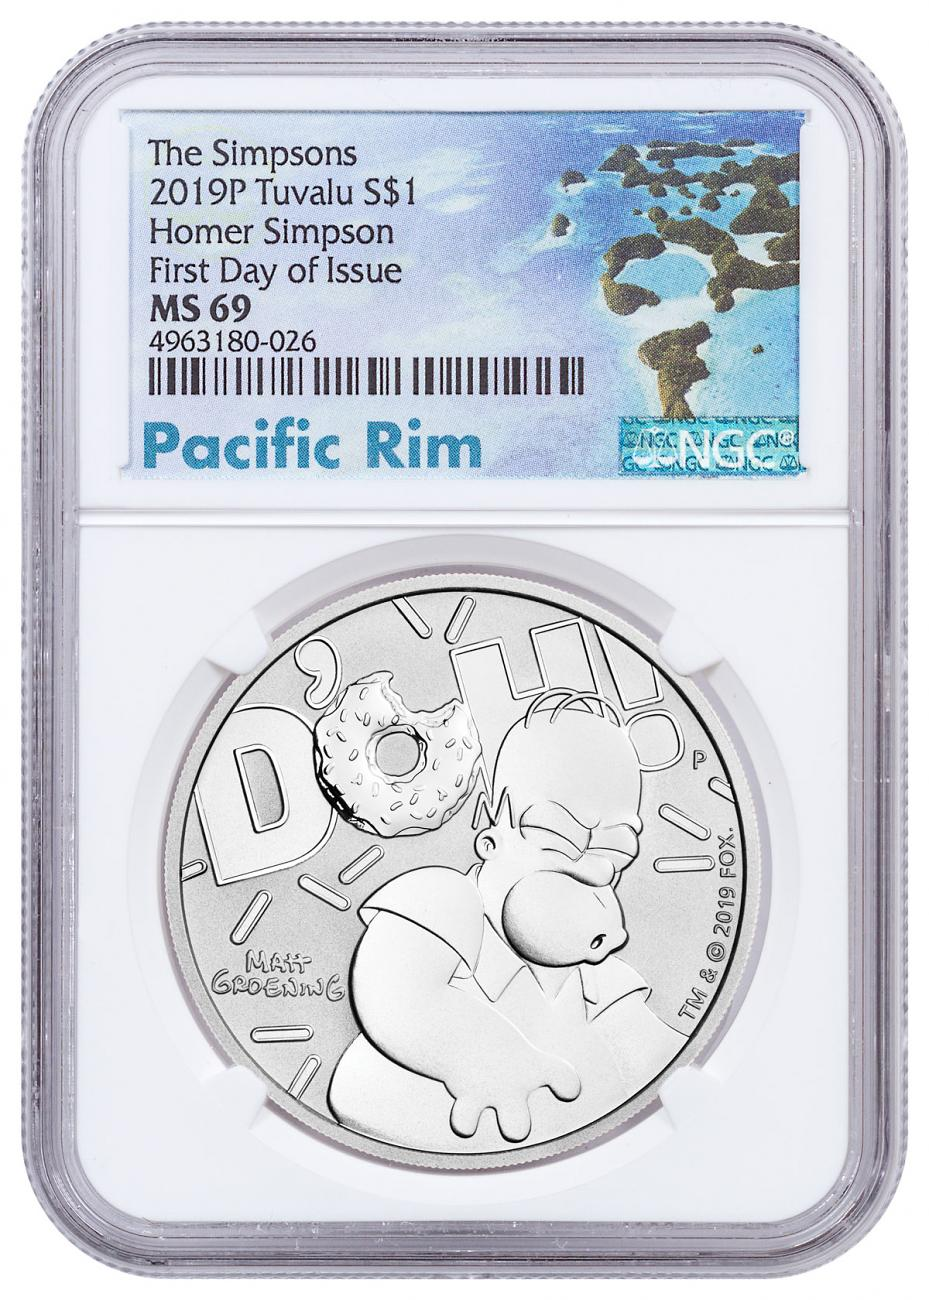 2019 Tuvalu The Simpsons - Homer 1 oz Silver $1 Coin NGC MS69 FDI Exclusive Pacific Rim Label